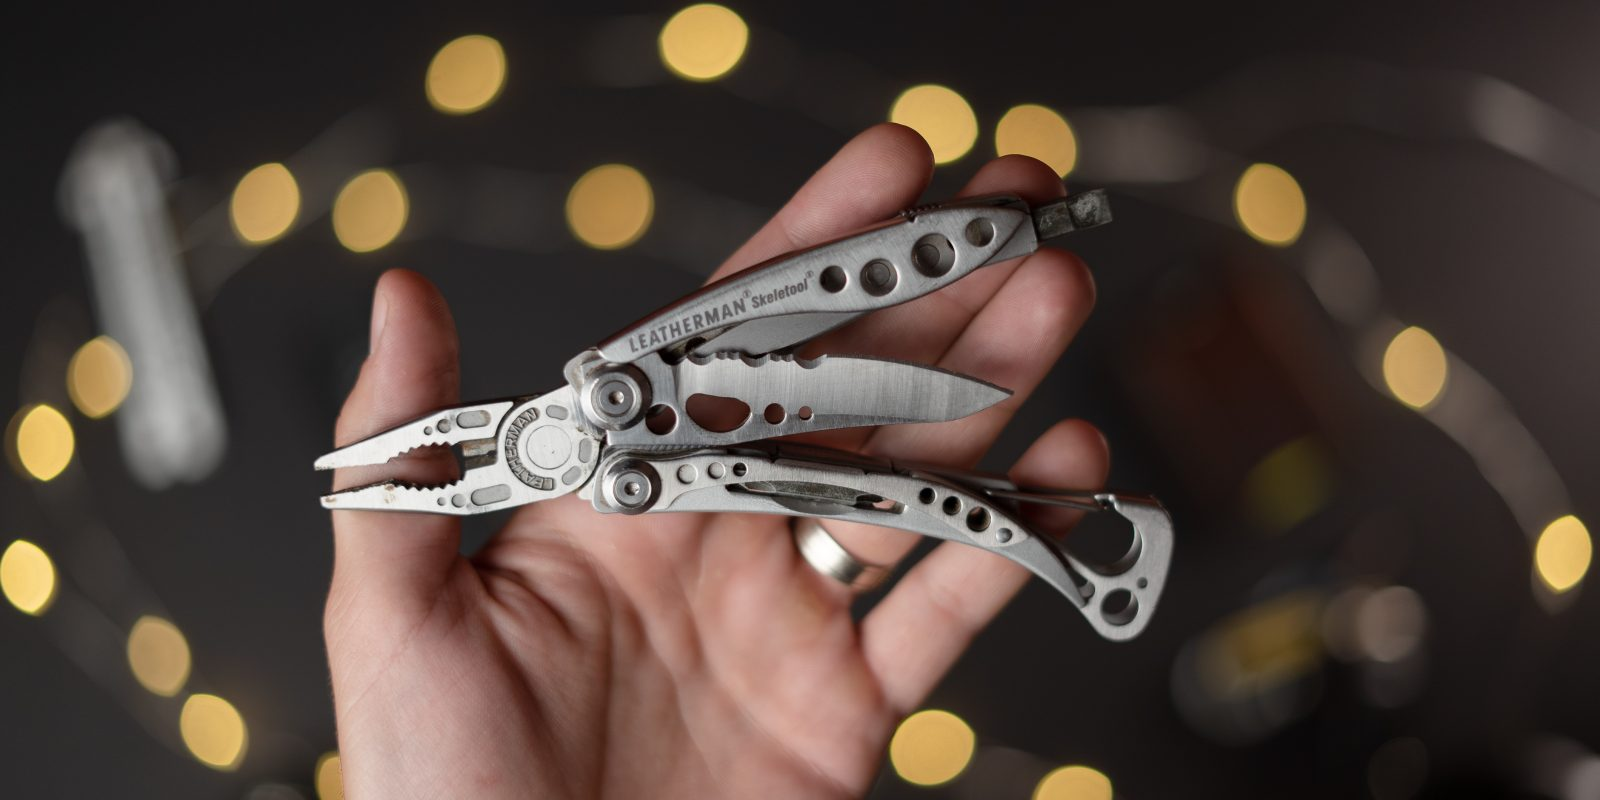 Leatherman Skeletool: My favorite everyday carry [Video]